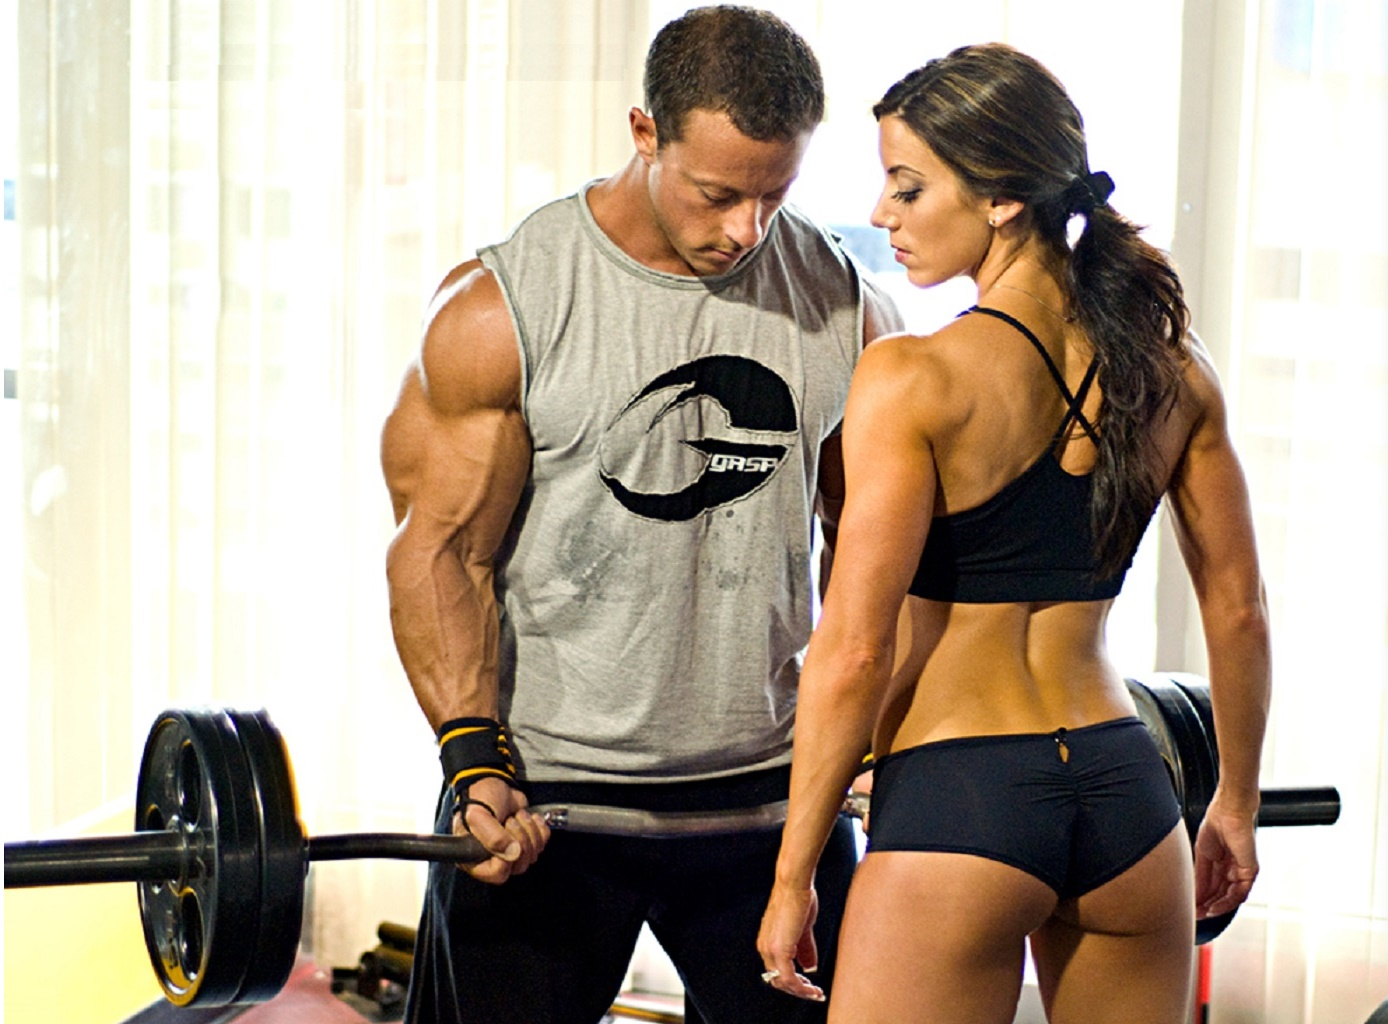 The Muscle Building Benefits Of Anabolic Steroids That You Should Know